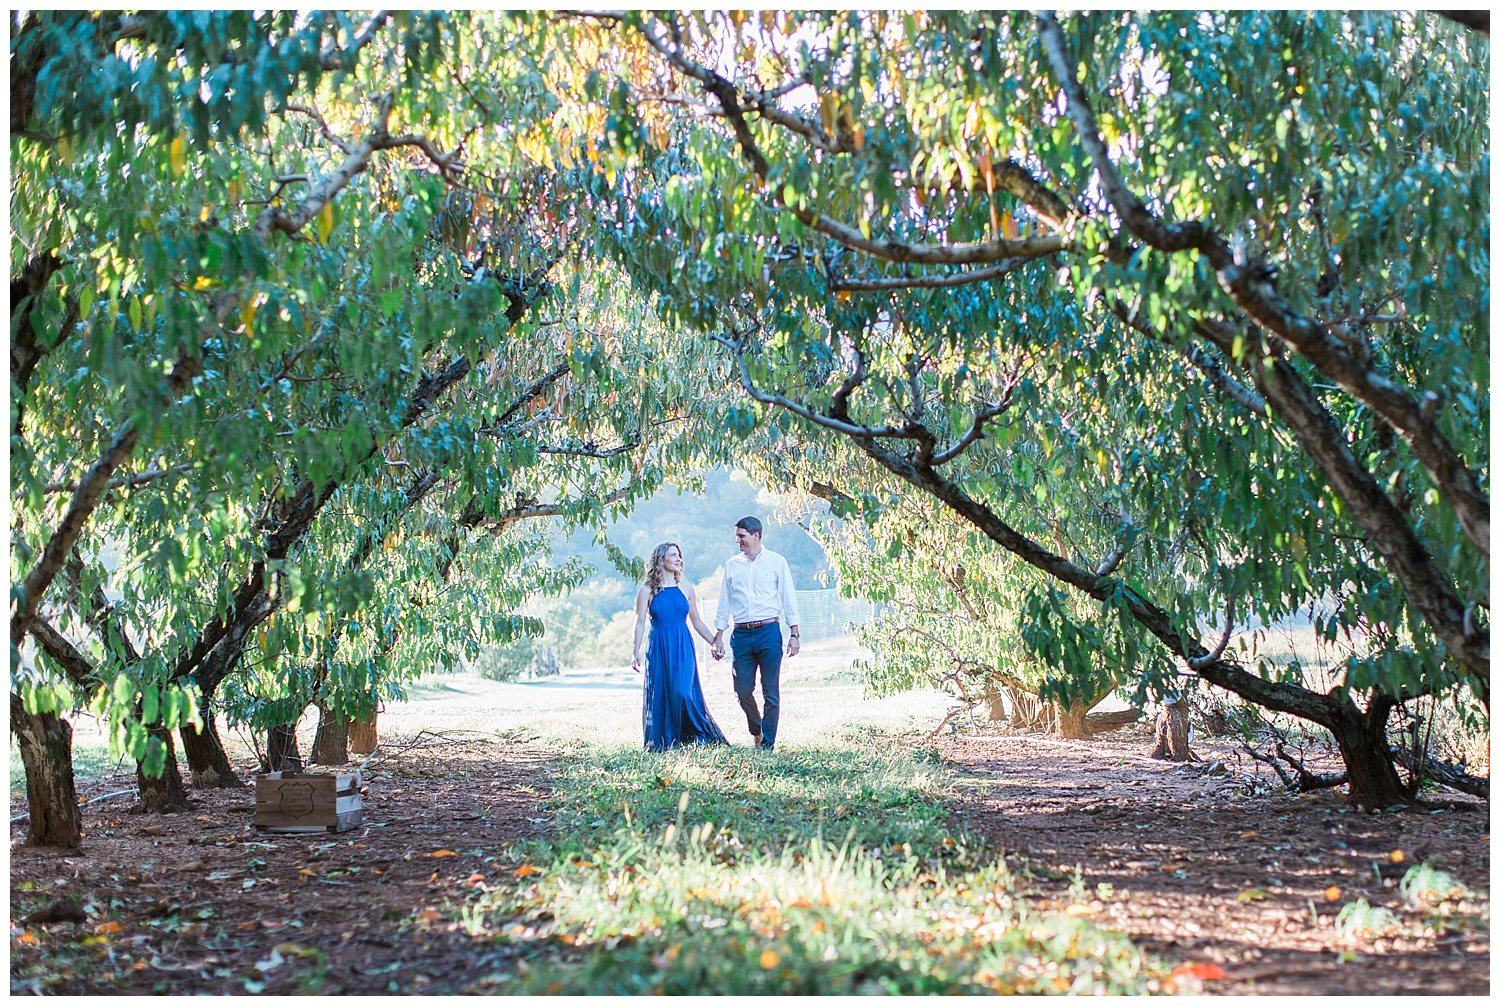 charlottesville_wedding_photographer_chiles_peach_orchard1.jpg